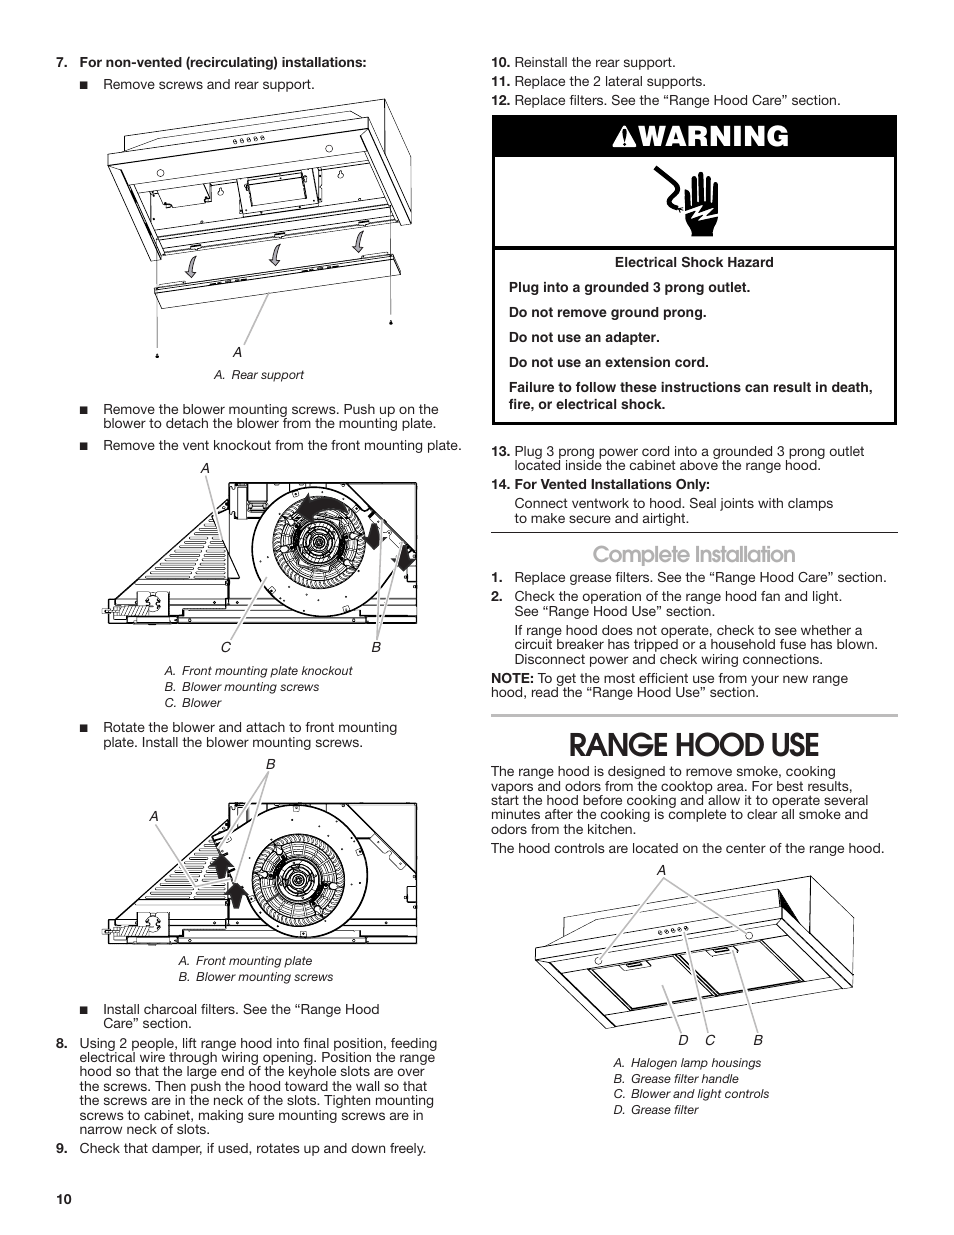 Range Hood Use Warning Complete Installation Maytag Uxt5536aas 2 Prong Vs 3 Outlets Manuel Dutilisation Page 10 28